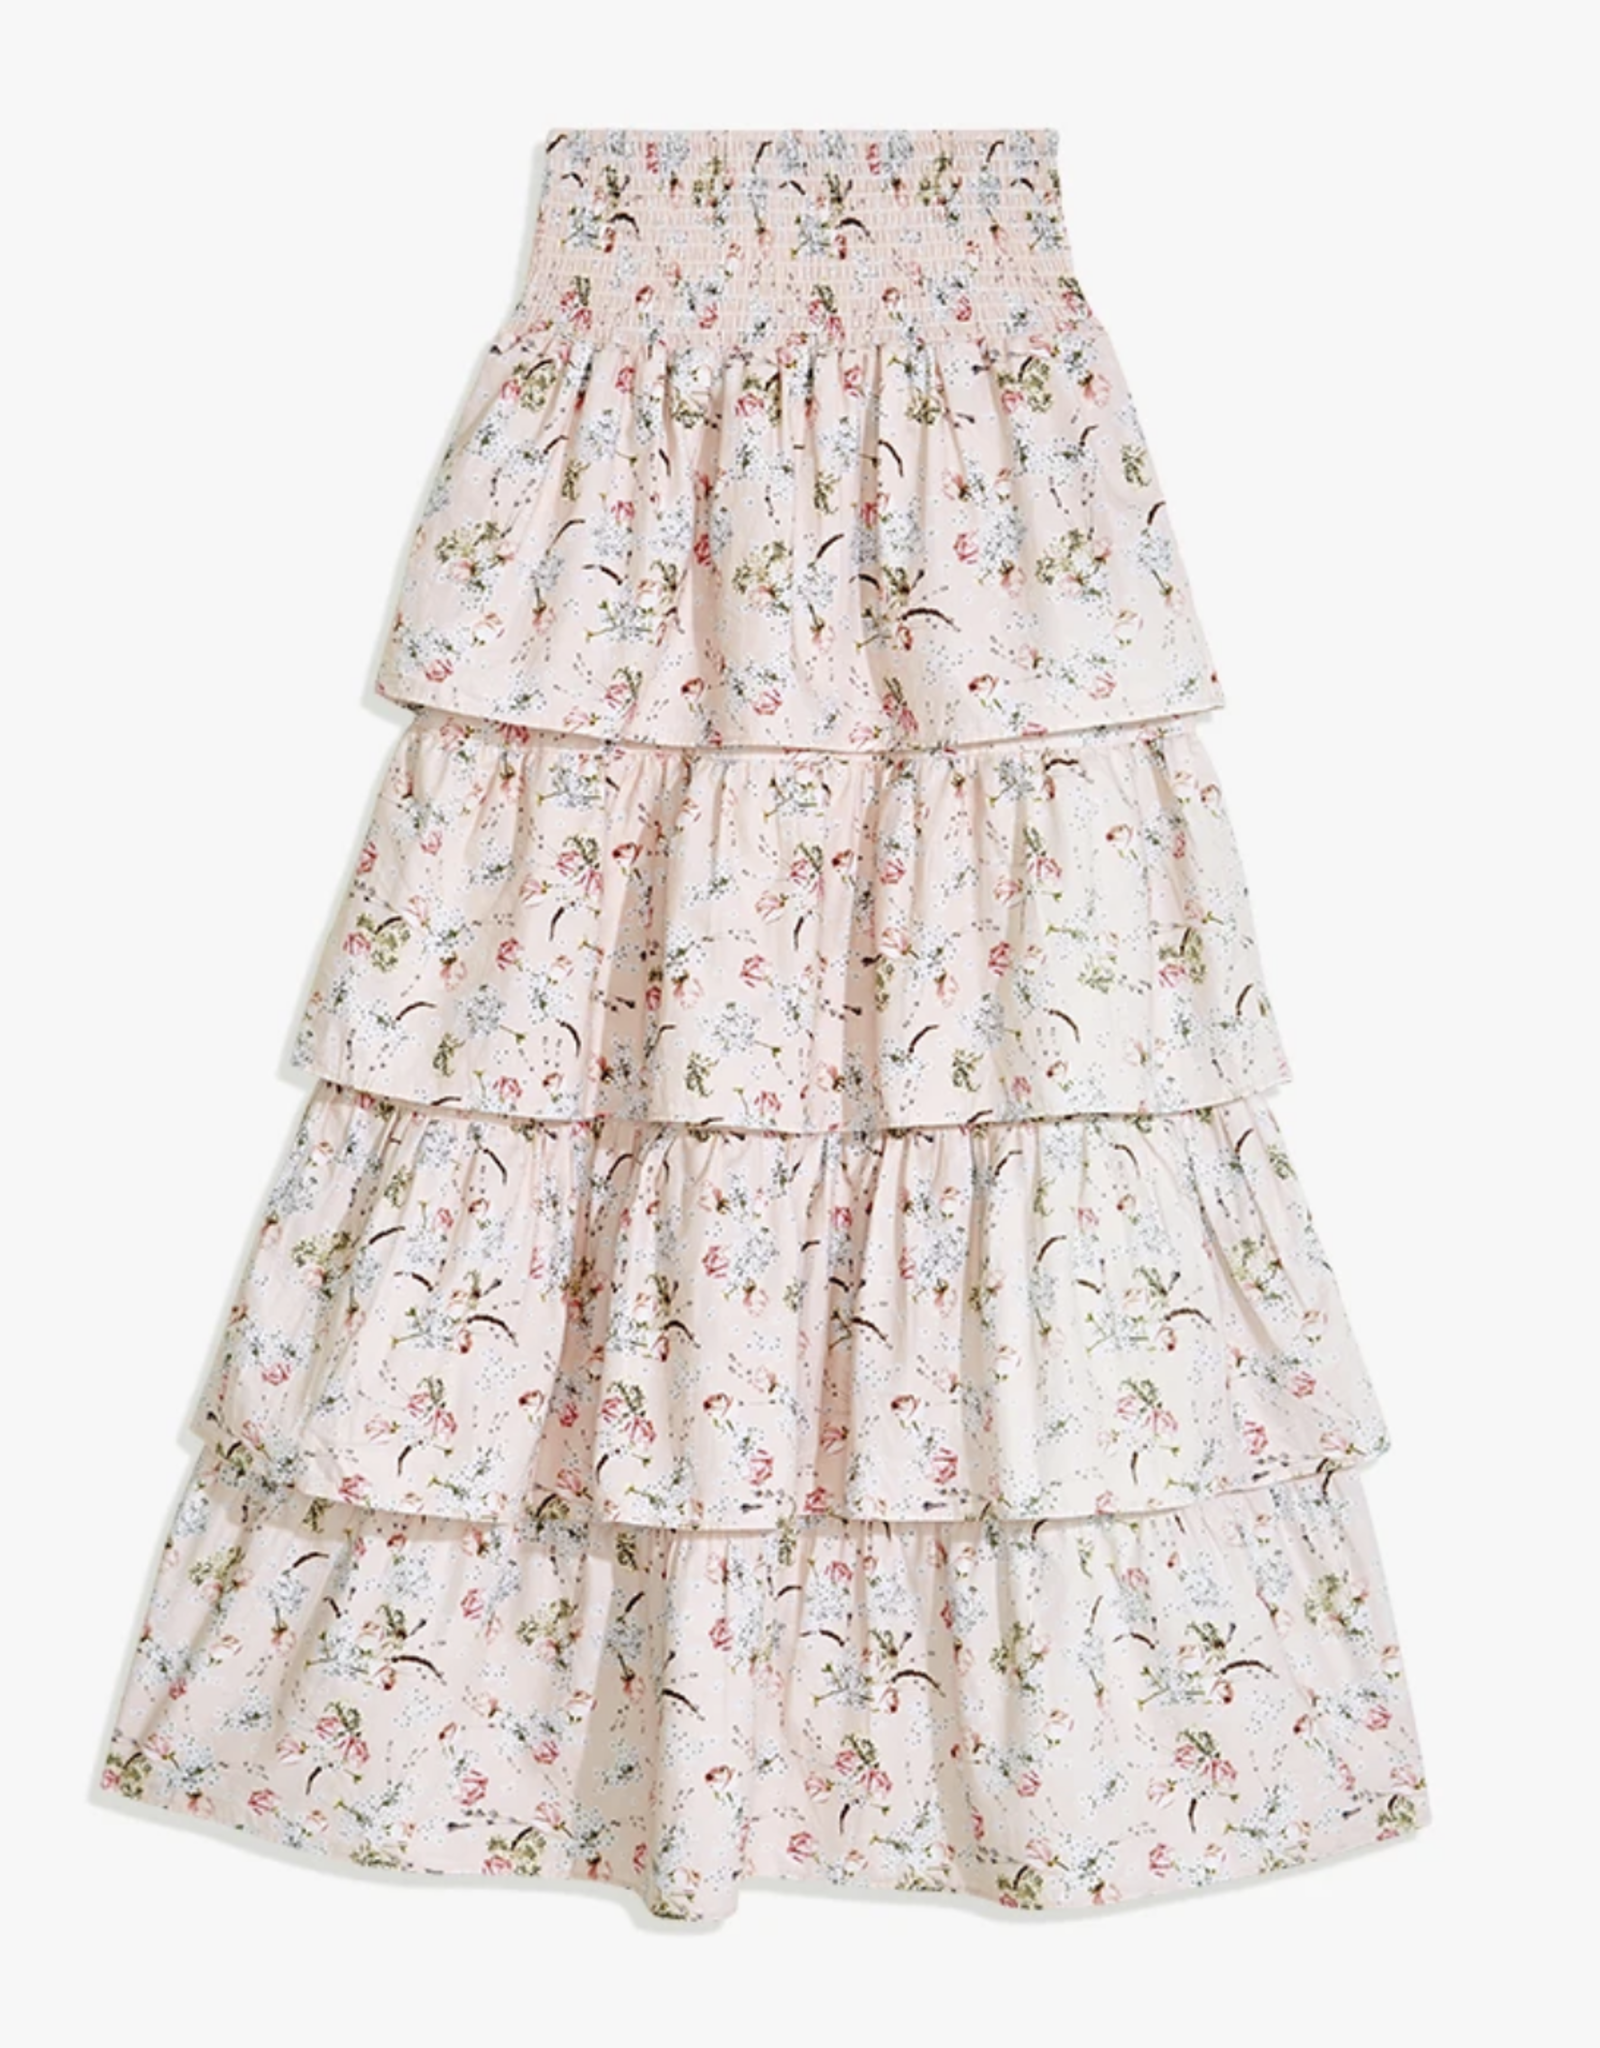 Dry Flowers Evening Sand Paloma Skirt